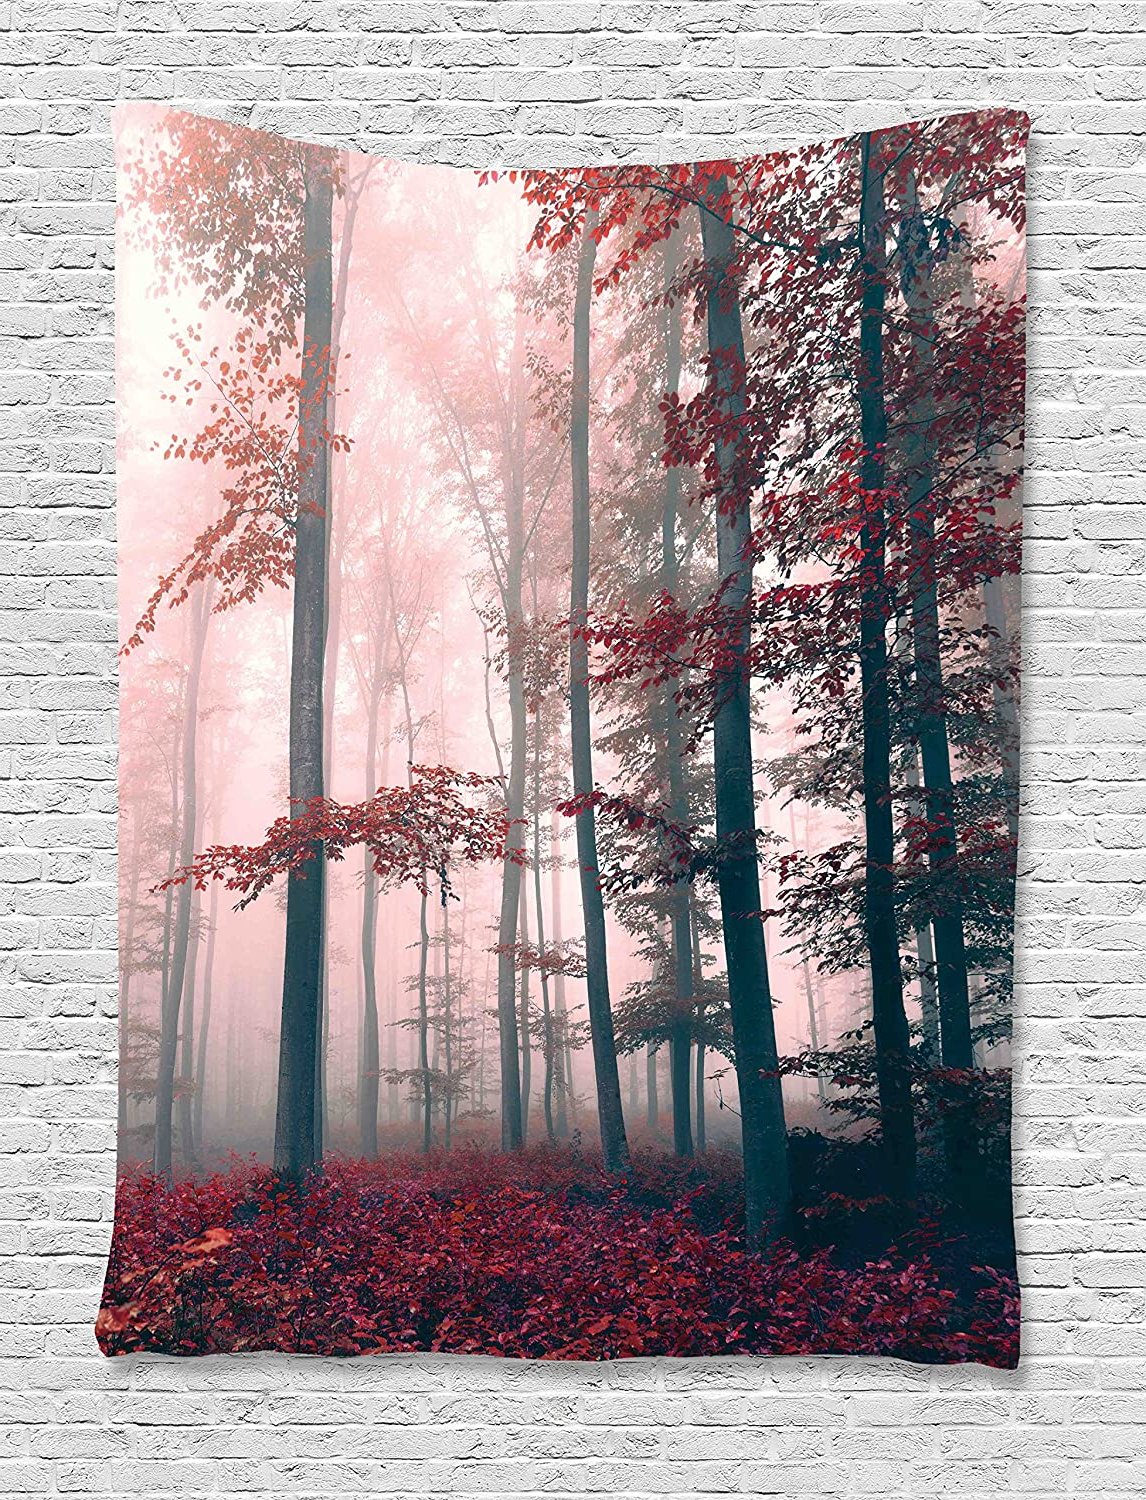 Blended Fabric Spring Blossom Tapestries Within Most Up To Date Ambesonne Art Tapestry Wall Decorcherry Blossom Sakura (View 10 of 20)